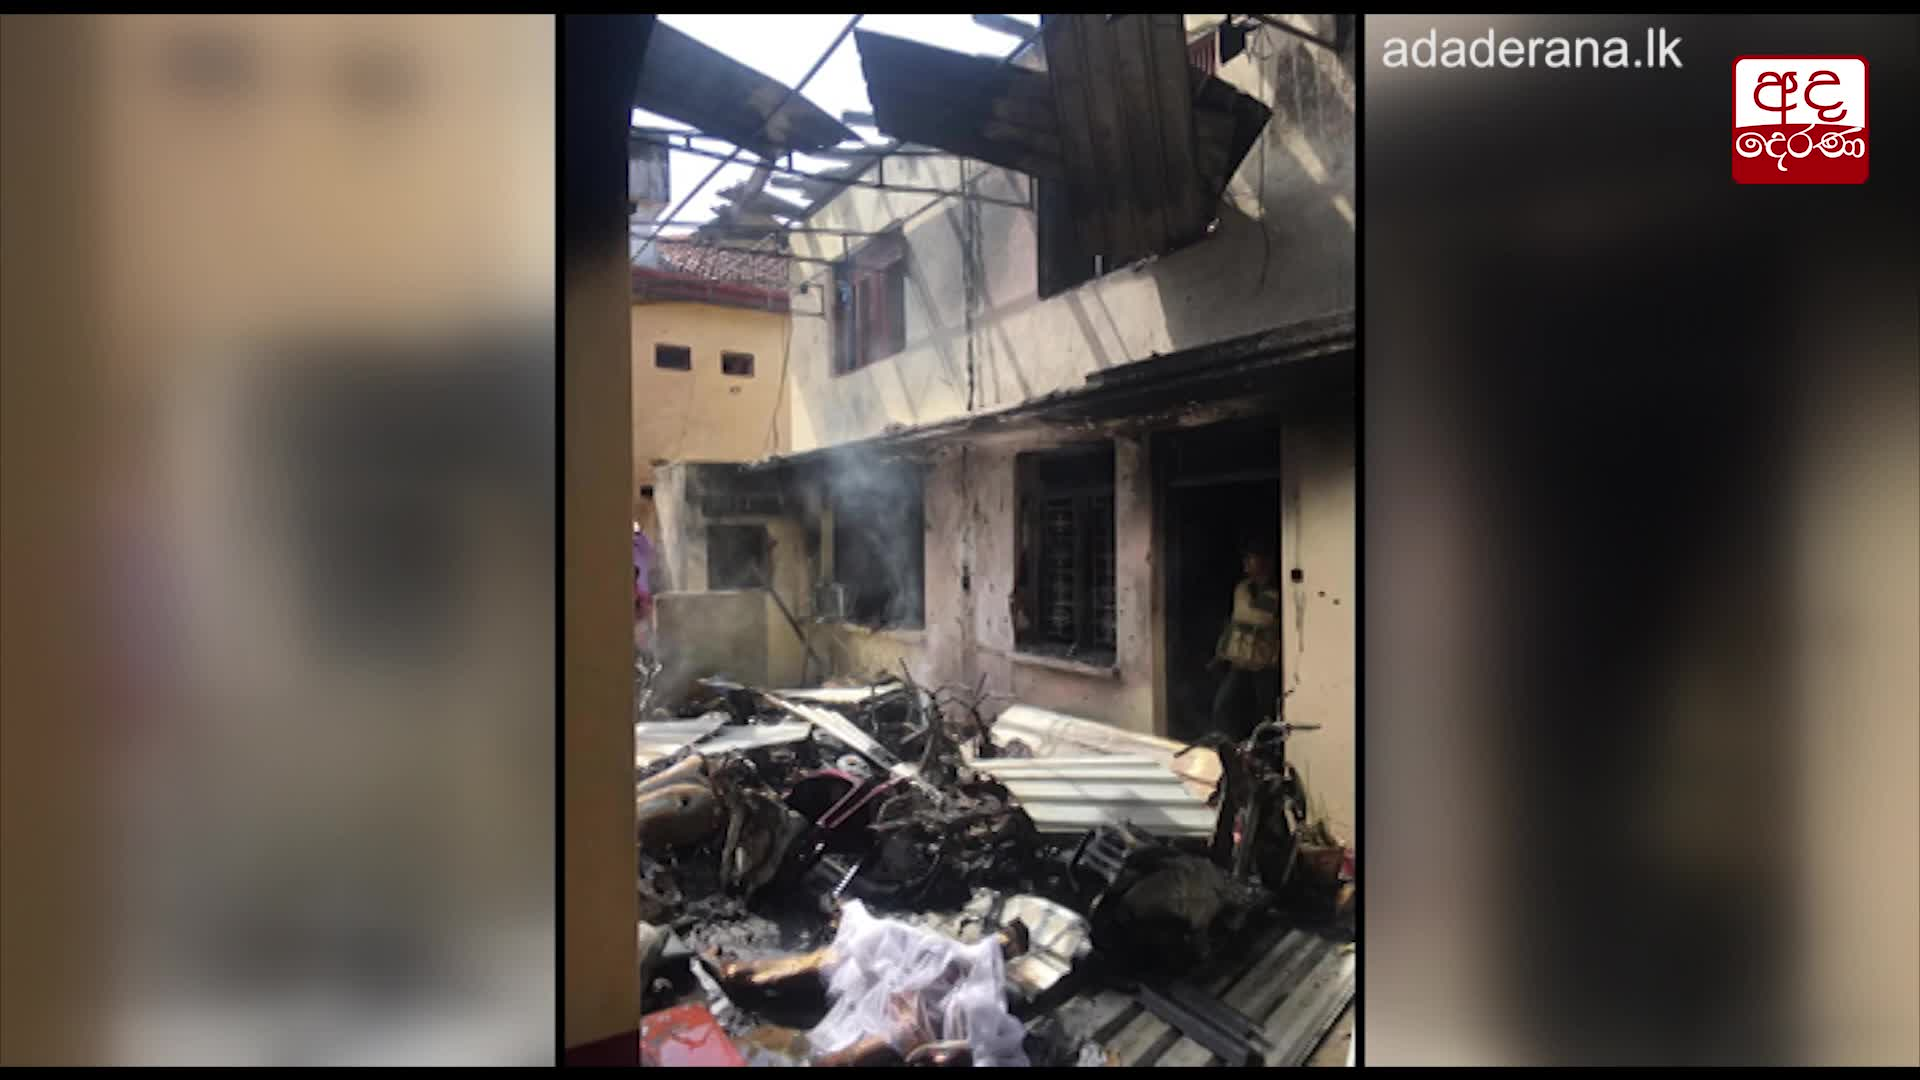 Another explosion at Zion Church in Batticaloa